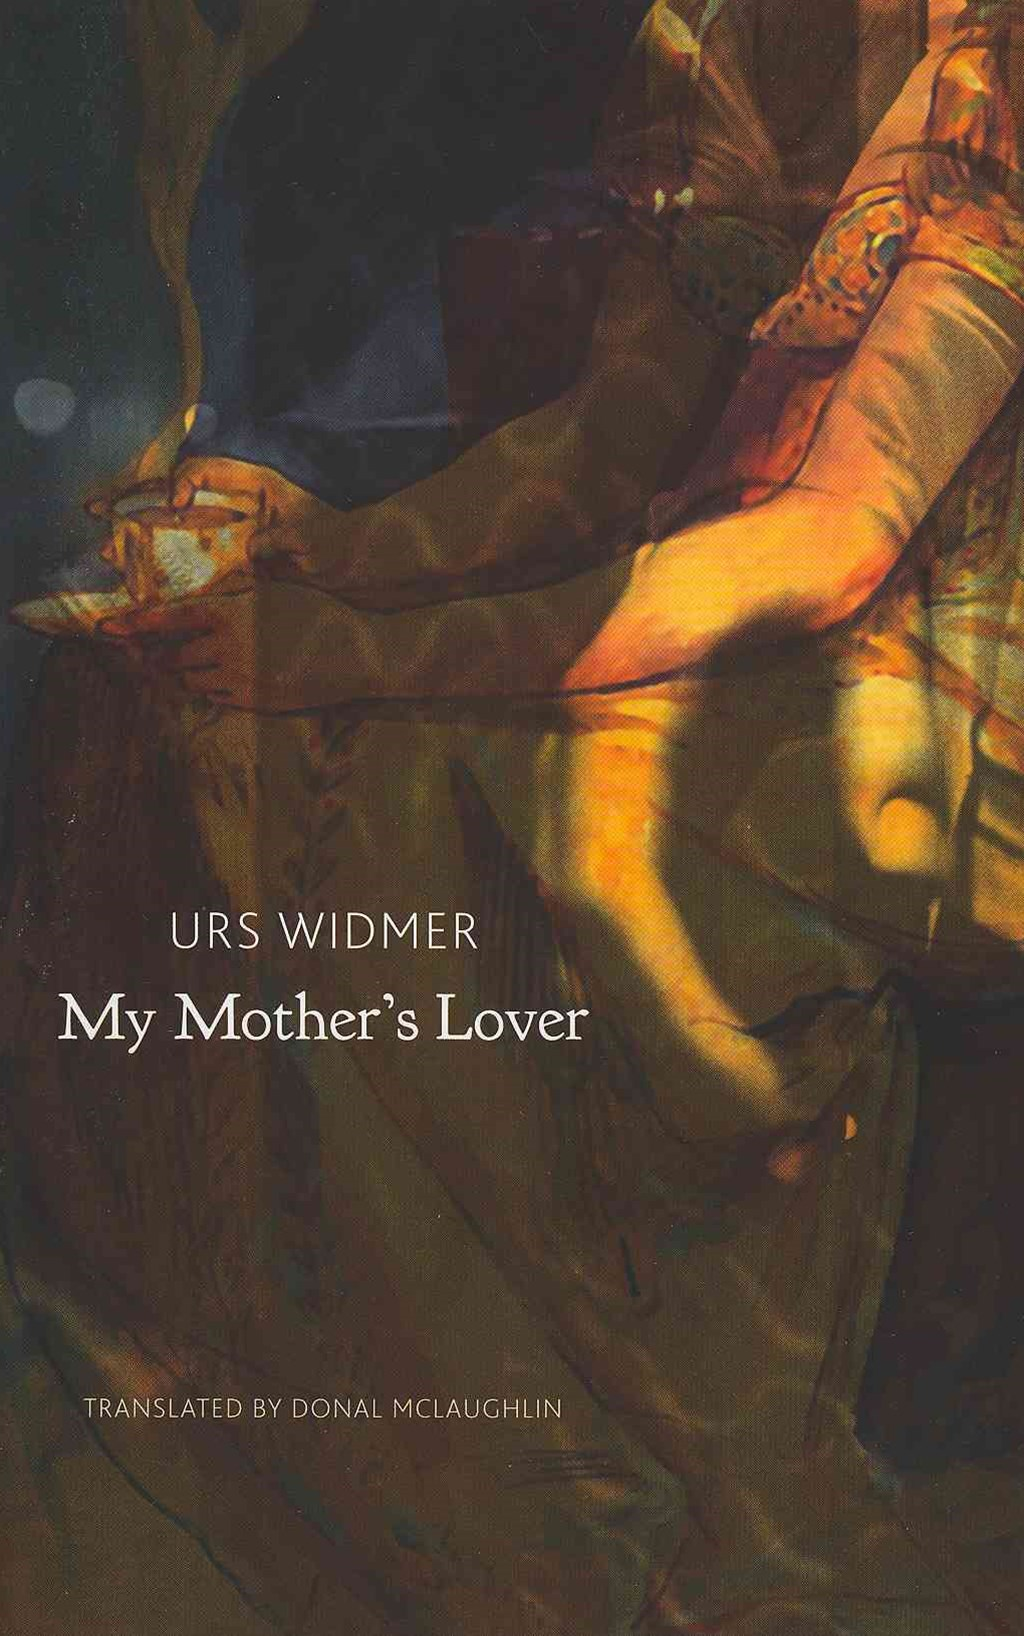 My Mother's Lover